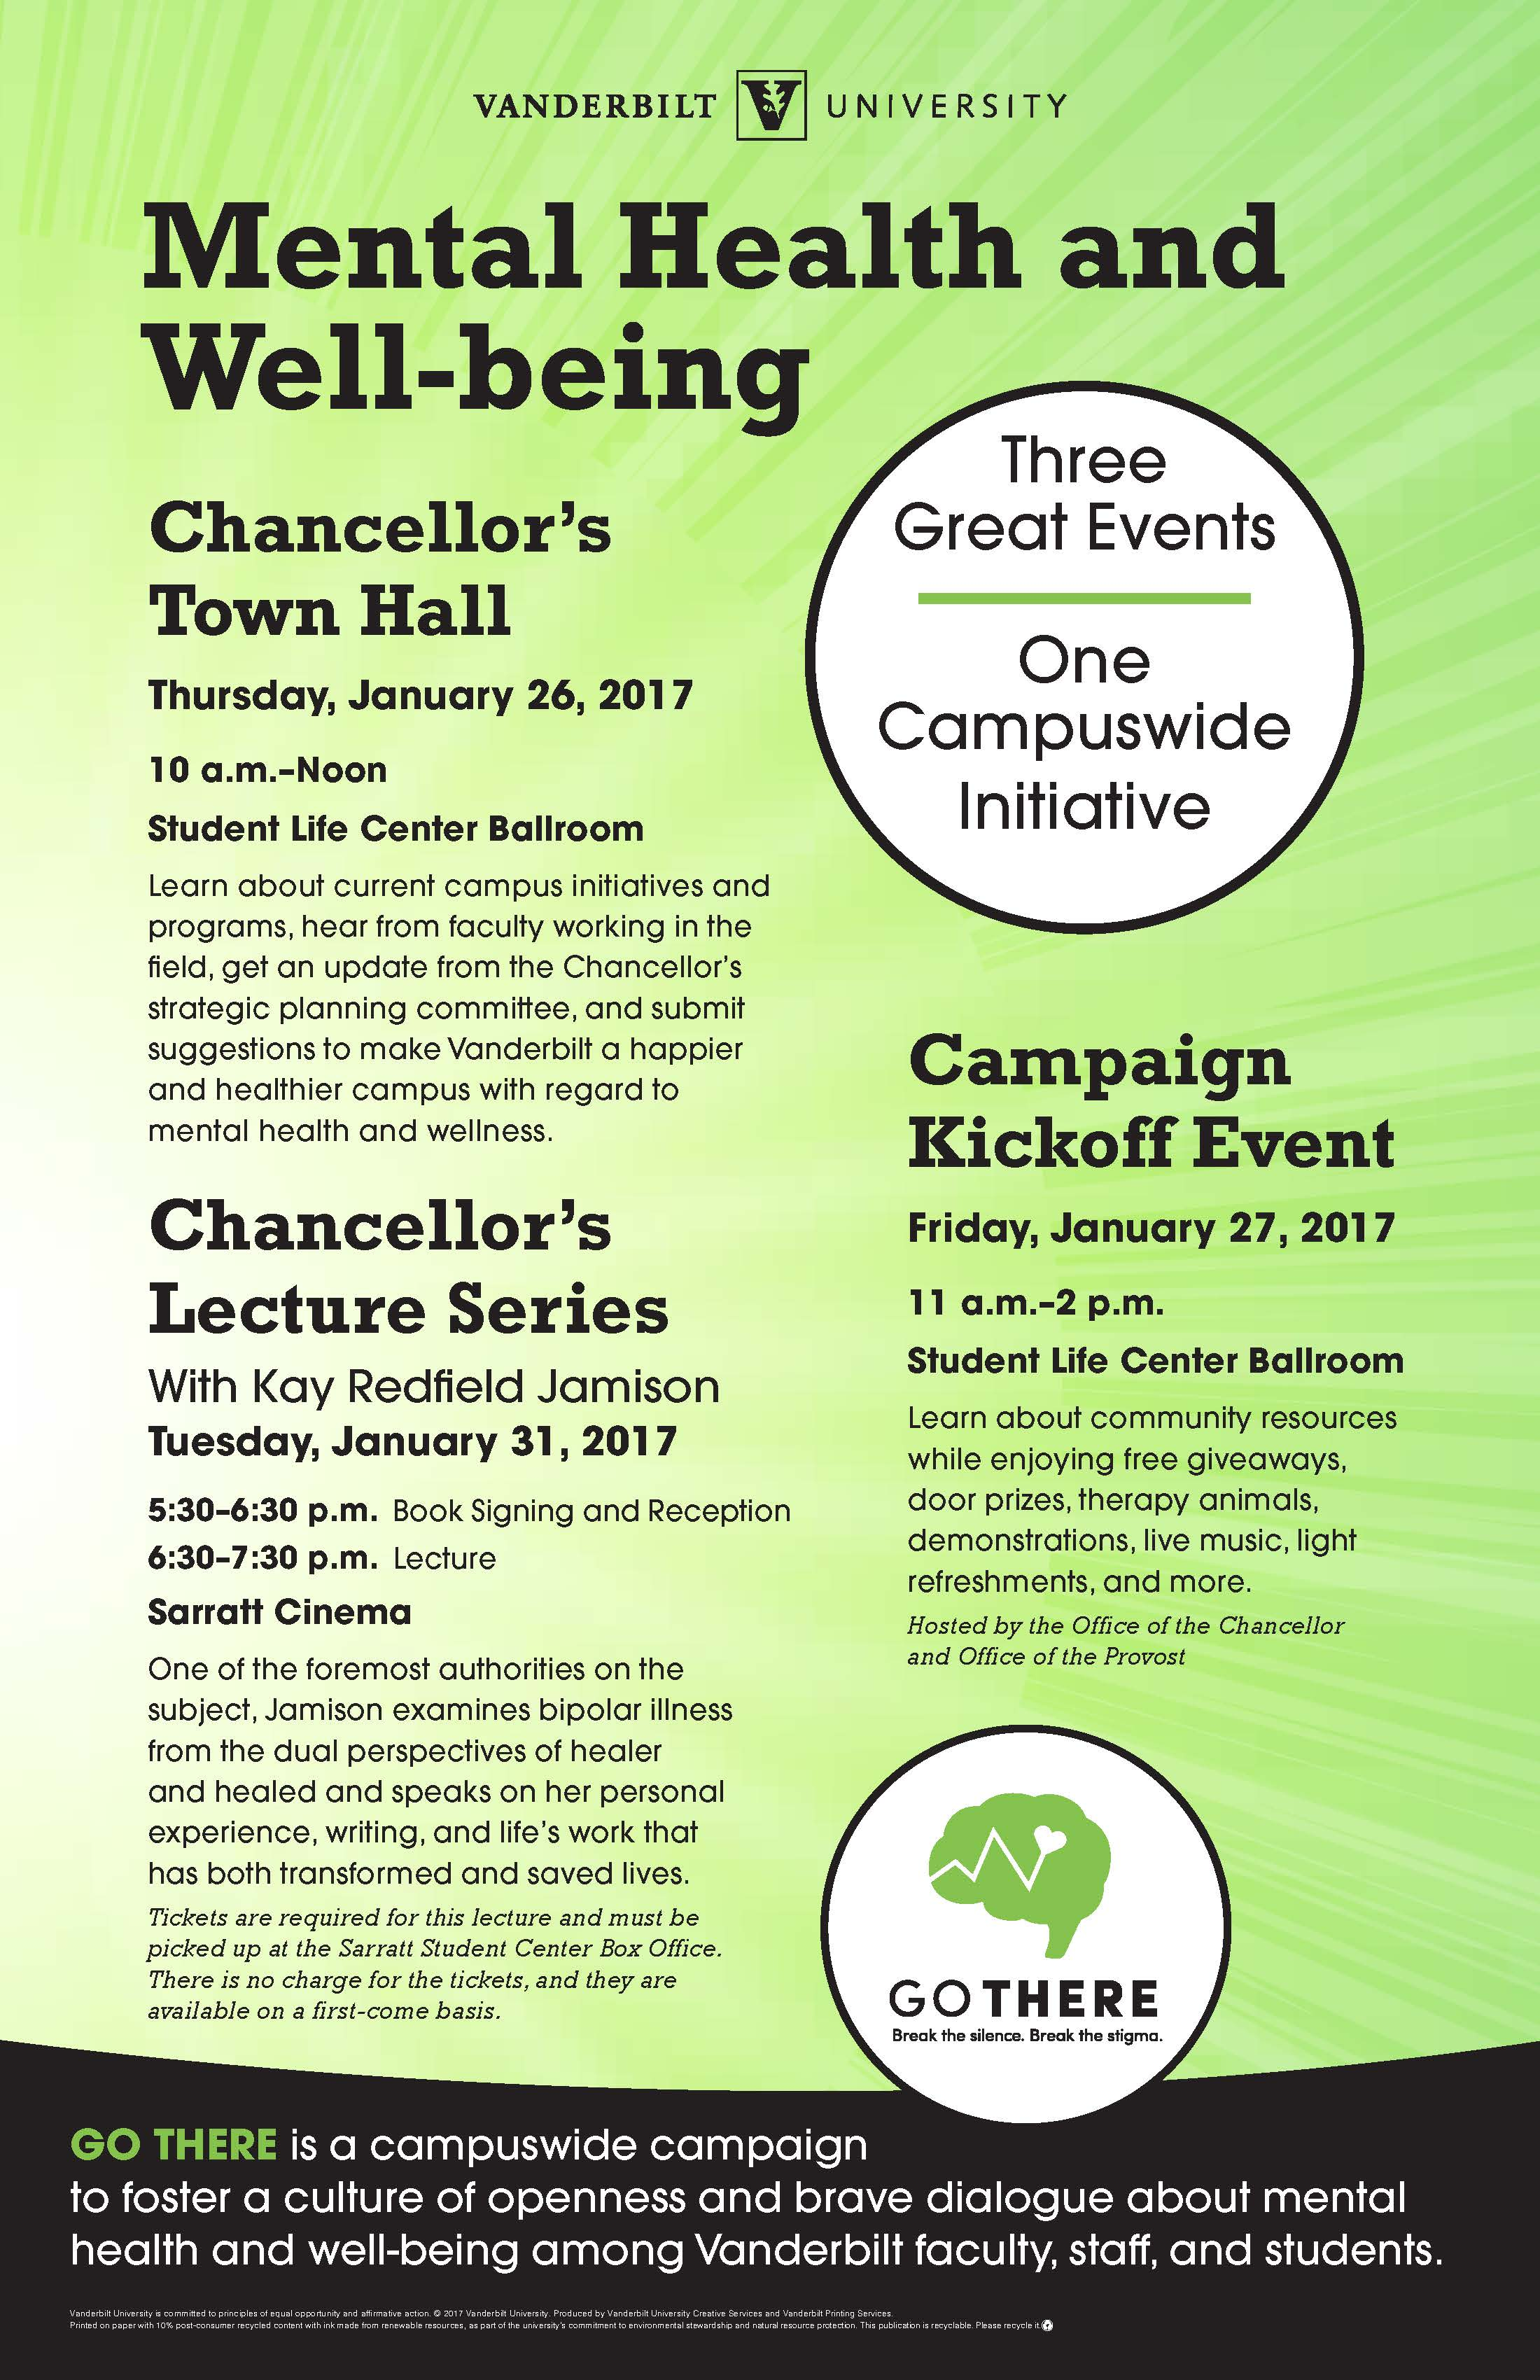 kickoff event flyer full size final equity diversity and